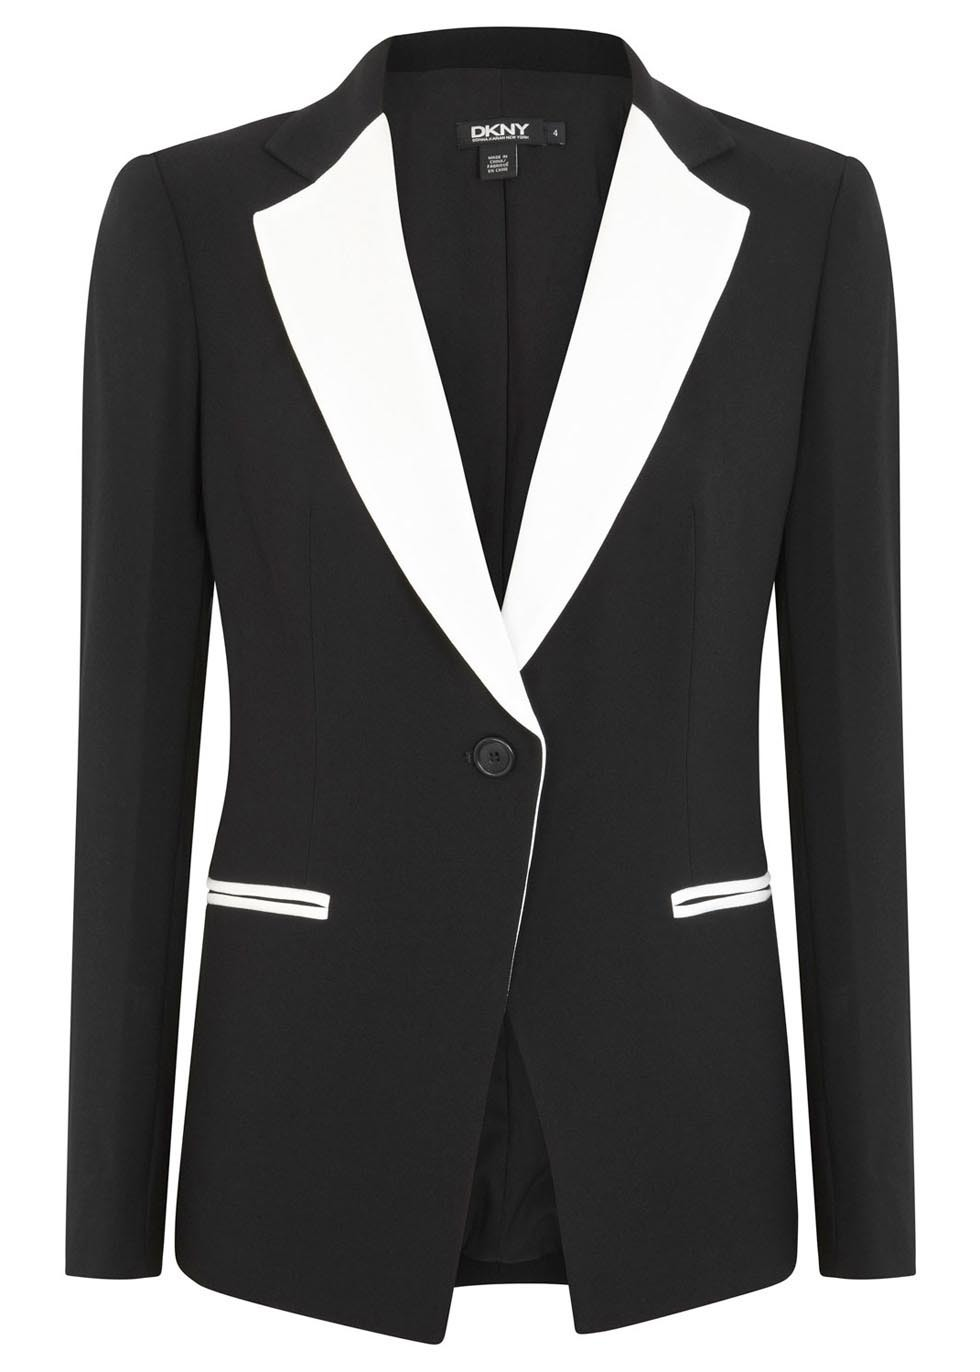 Monochrome Crepe Blazer - style: single breasted blazer; collar: standard lapel/rever collar; secondary colour: white; predominant colour: black; occasions: evening, work, creative work; length: standard; fit: tailored/fitted; fibres: acrylic - mix; sleeve length: long sleeve; sleeve style: standard; texture group: crepes; collar break: medium; pattern type: fabric; pattern size: standard; pattern: colourblock; season: s/s 2014; trends: monochrome